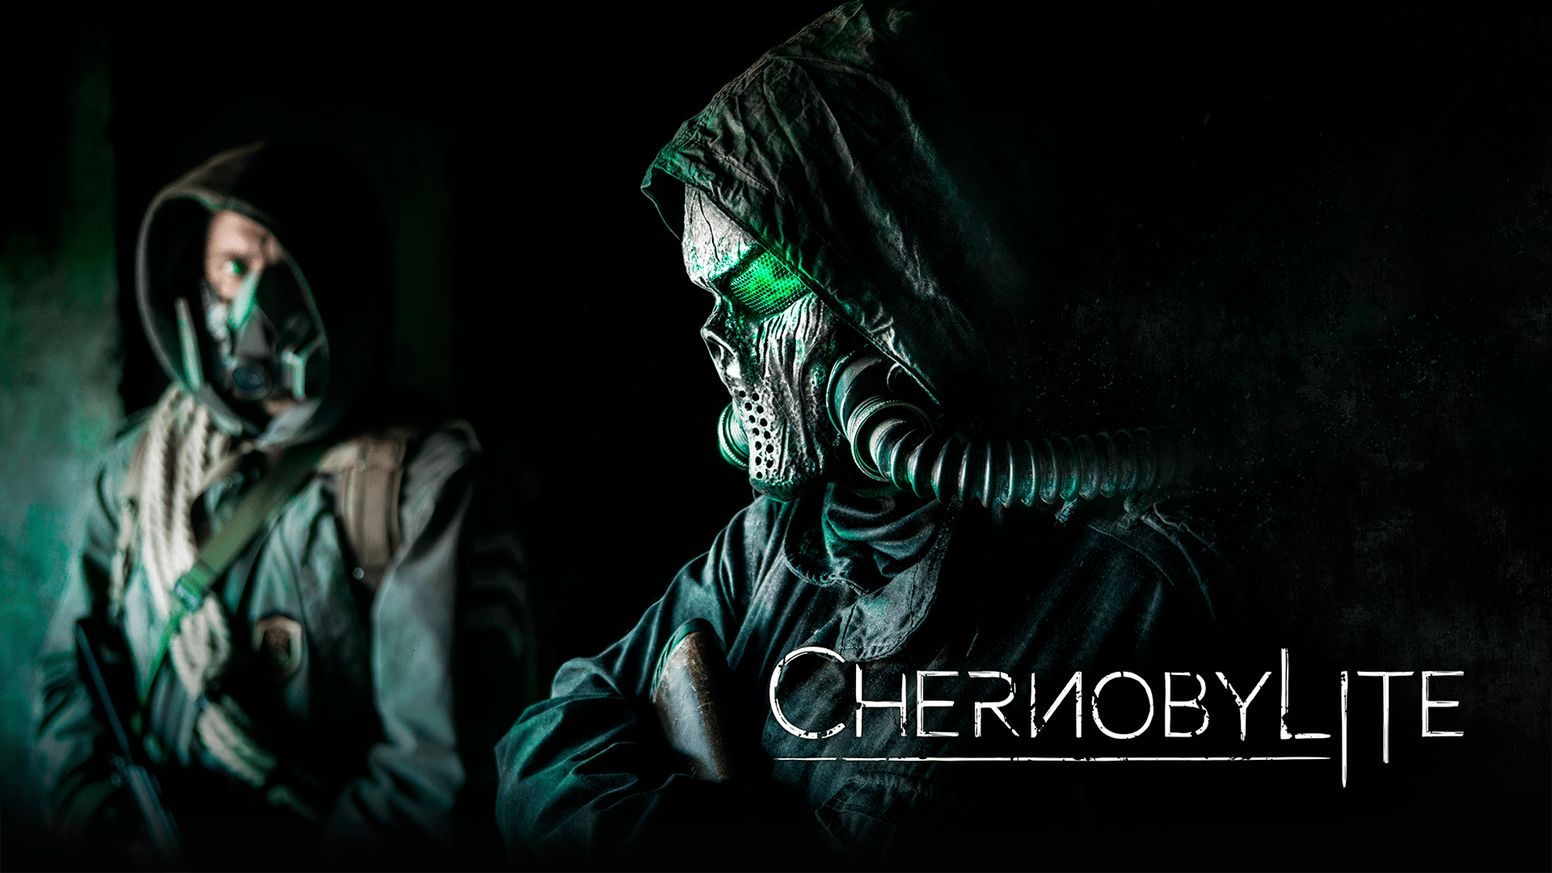 Chernobylite Is Coming To Steam Early Access Next Month, Check Out The New Showcase Trailer For This Radio...